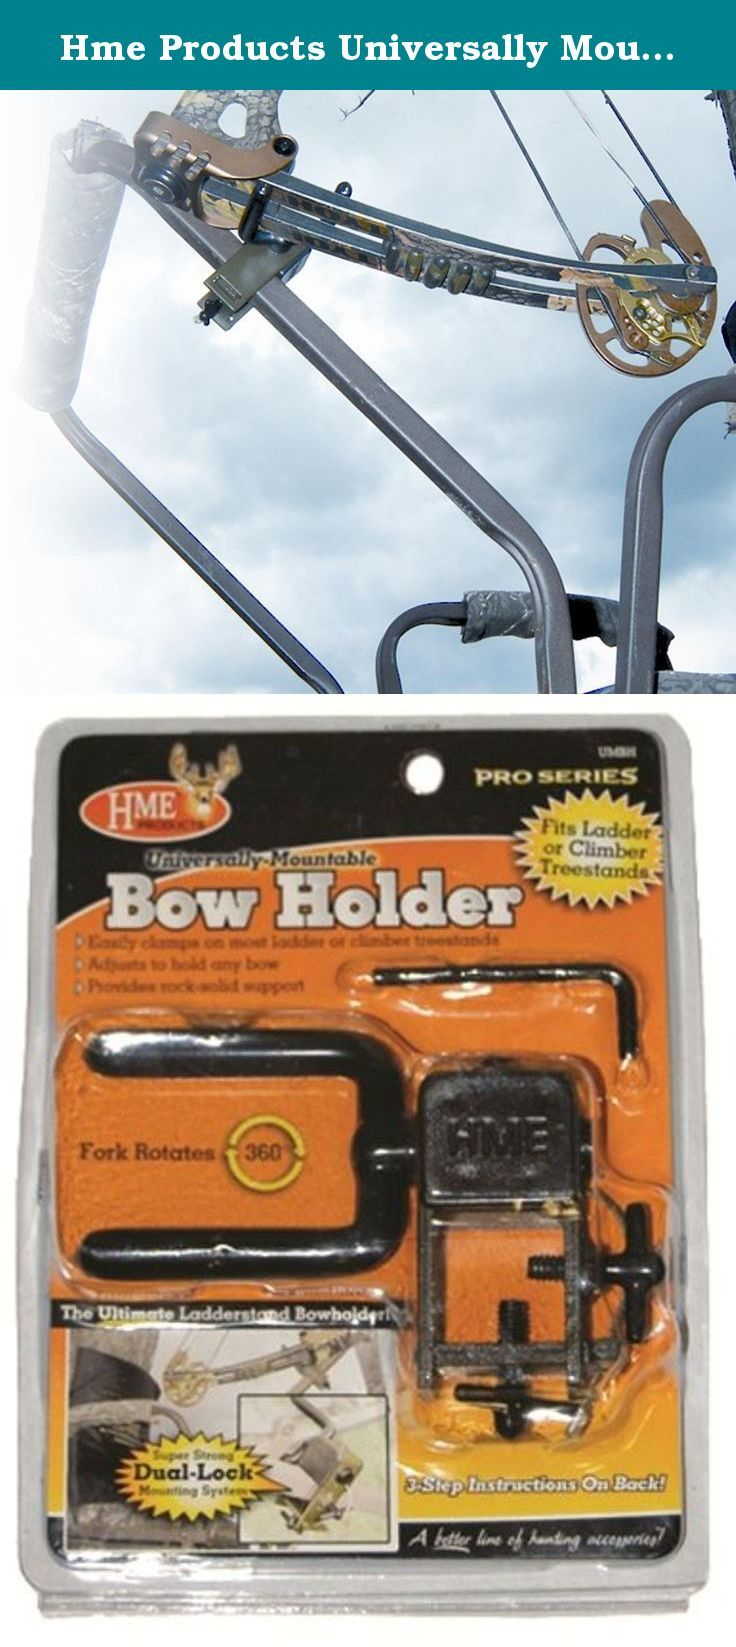 "Hme Products Universally Mountable Bow Holder, Olive. Yesa bow holder that will attach to virtually any ladder or climber treestand. With its special ""slide-n-lock"" mounting system, the hunter can mount the Bow Holder in seconds (no tools required). We have added a side mount lock. This side mount lock provides four points of contact for a rock solid attachment. We challenge you to find a more user-friendly and stable bow holder. The fork rotates 360° to accommodate any bow limb and riser..."